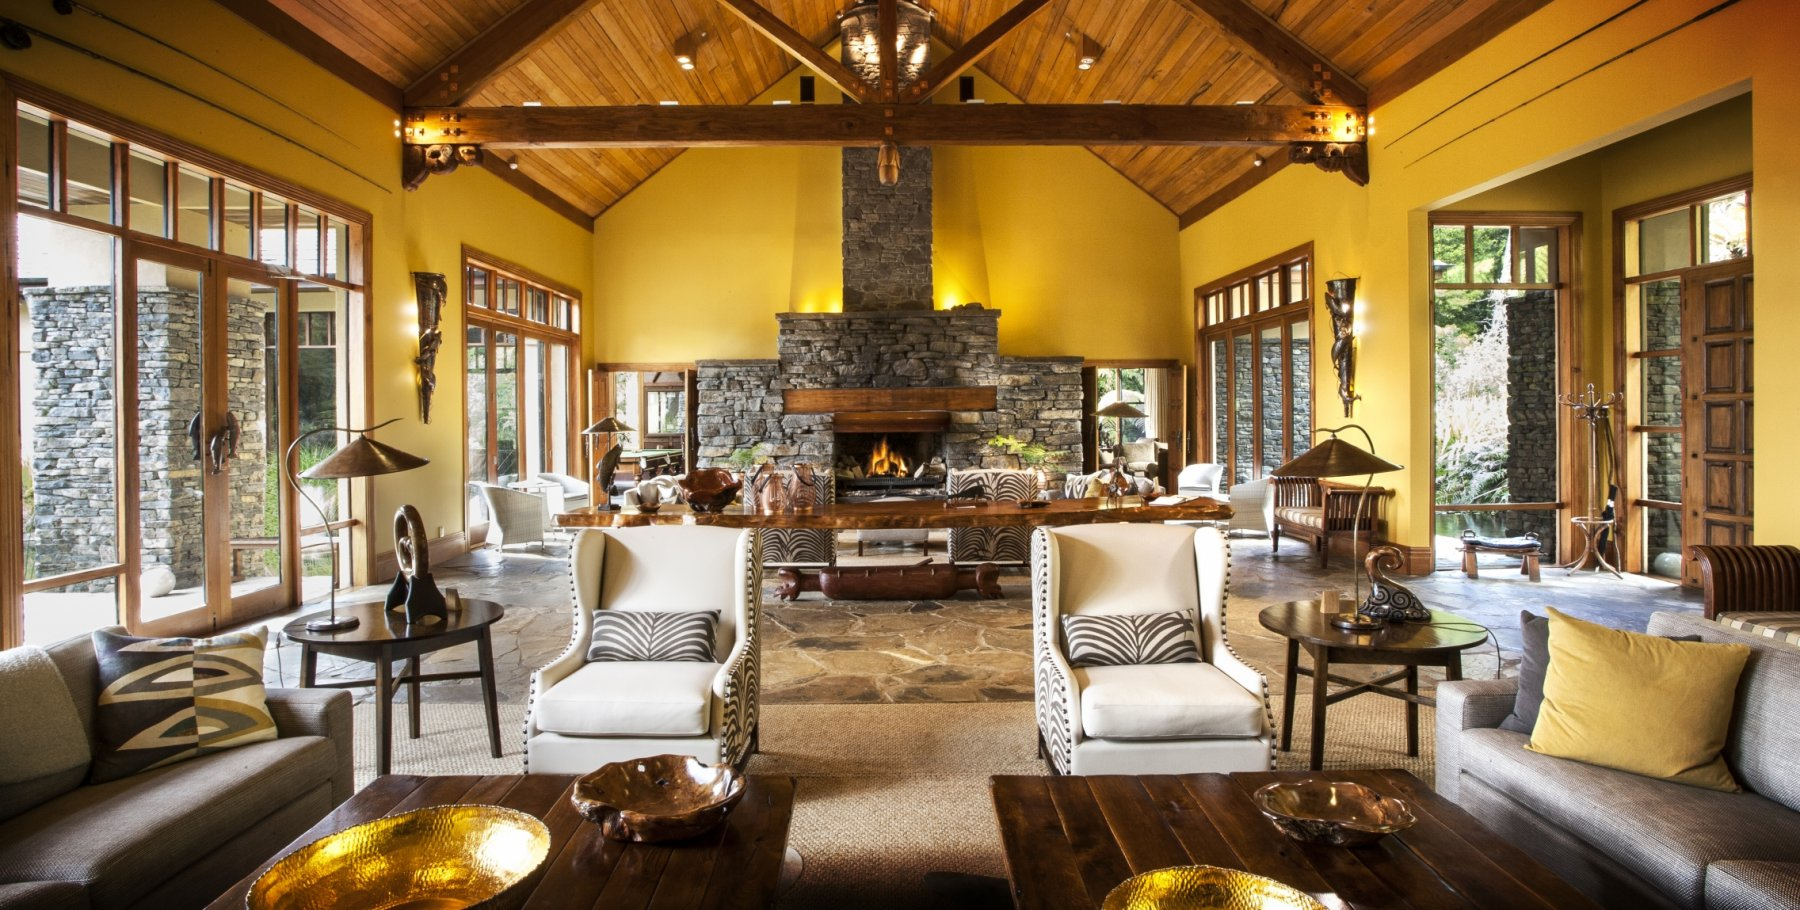 Treetops Lodge & Estate by Karen Fergusson Interiors